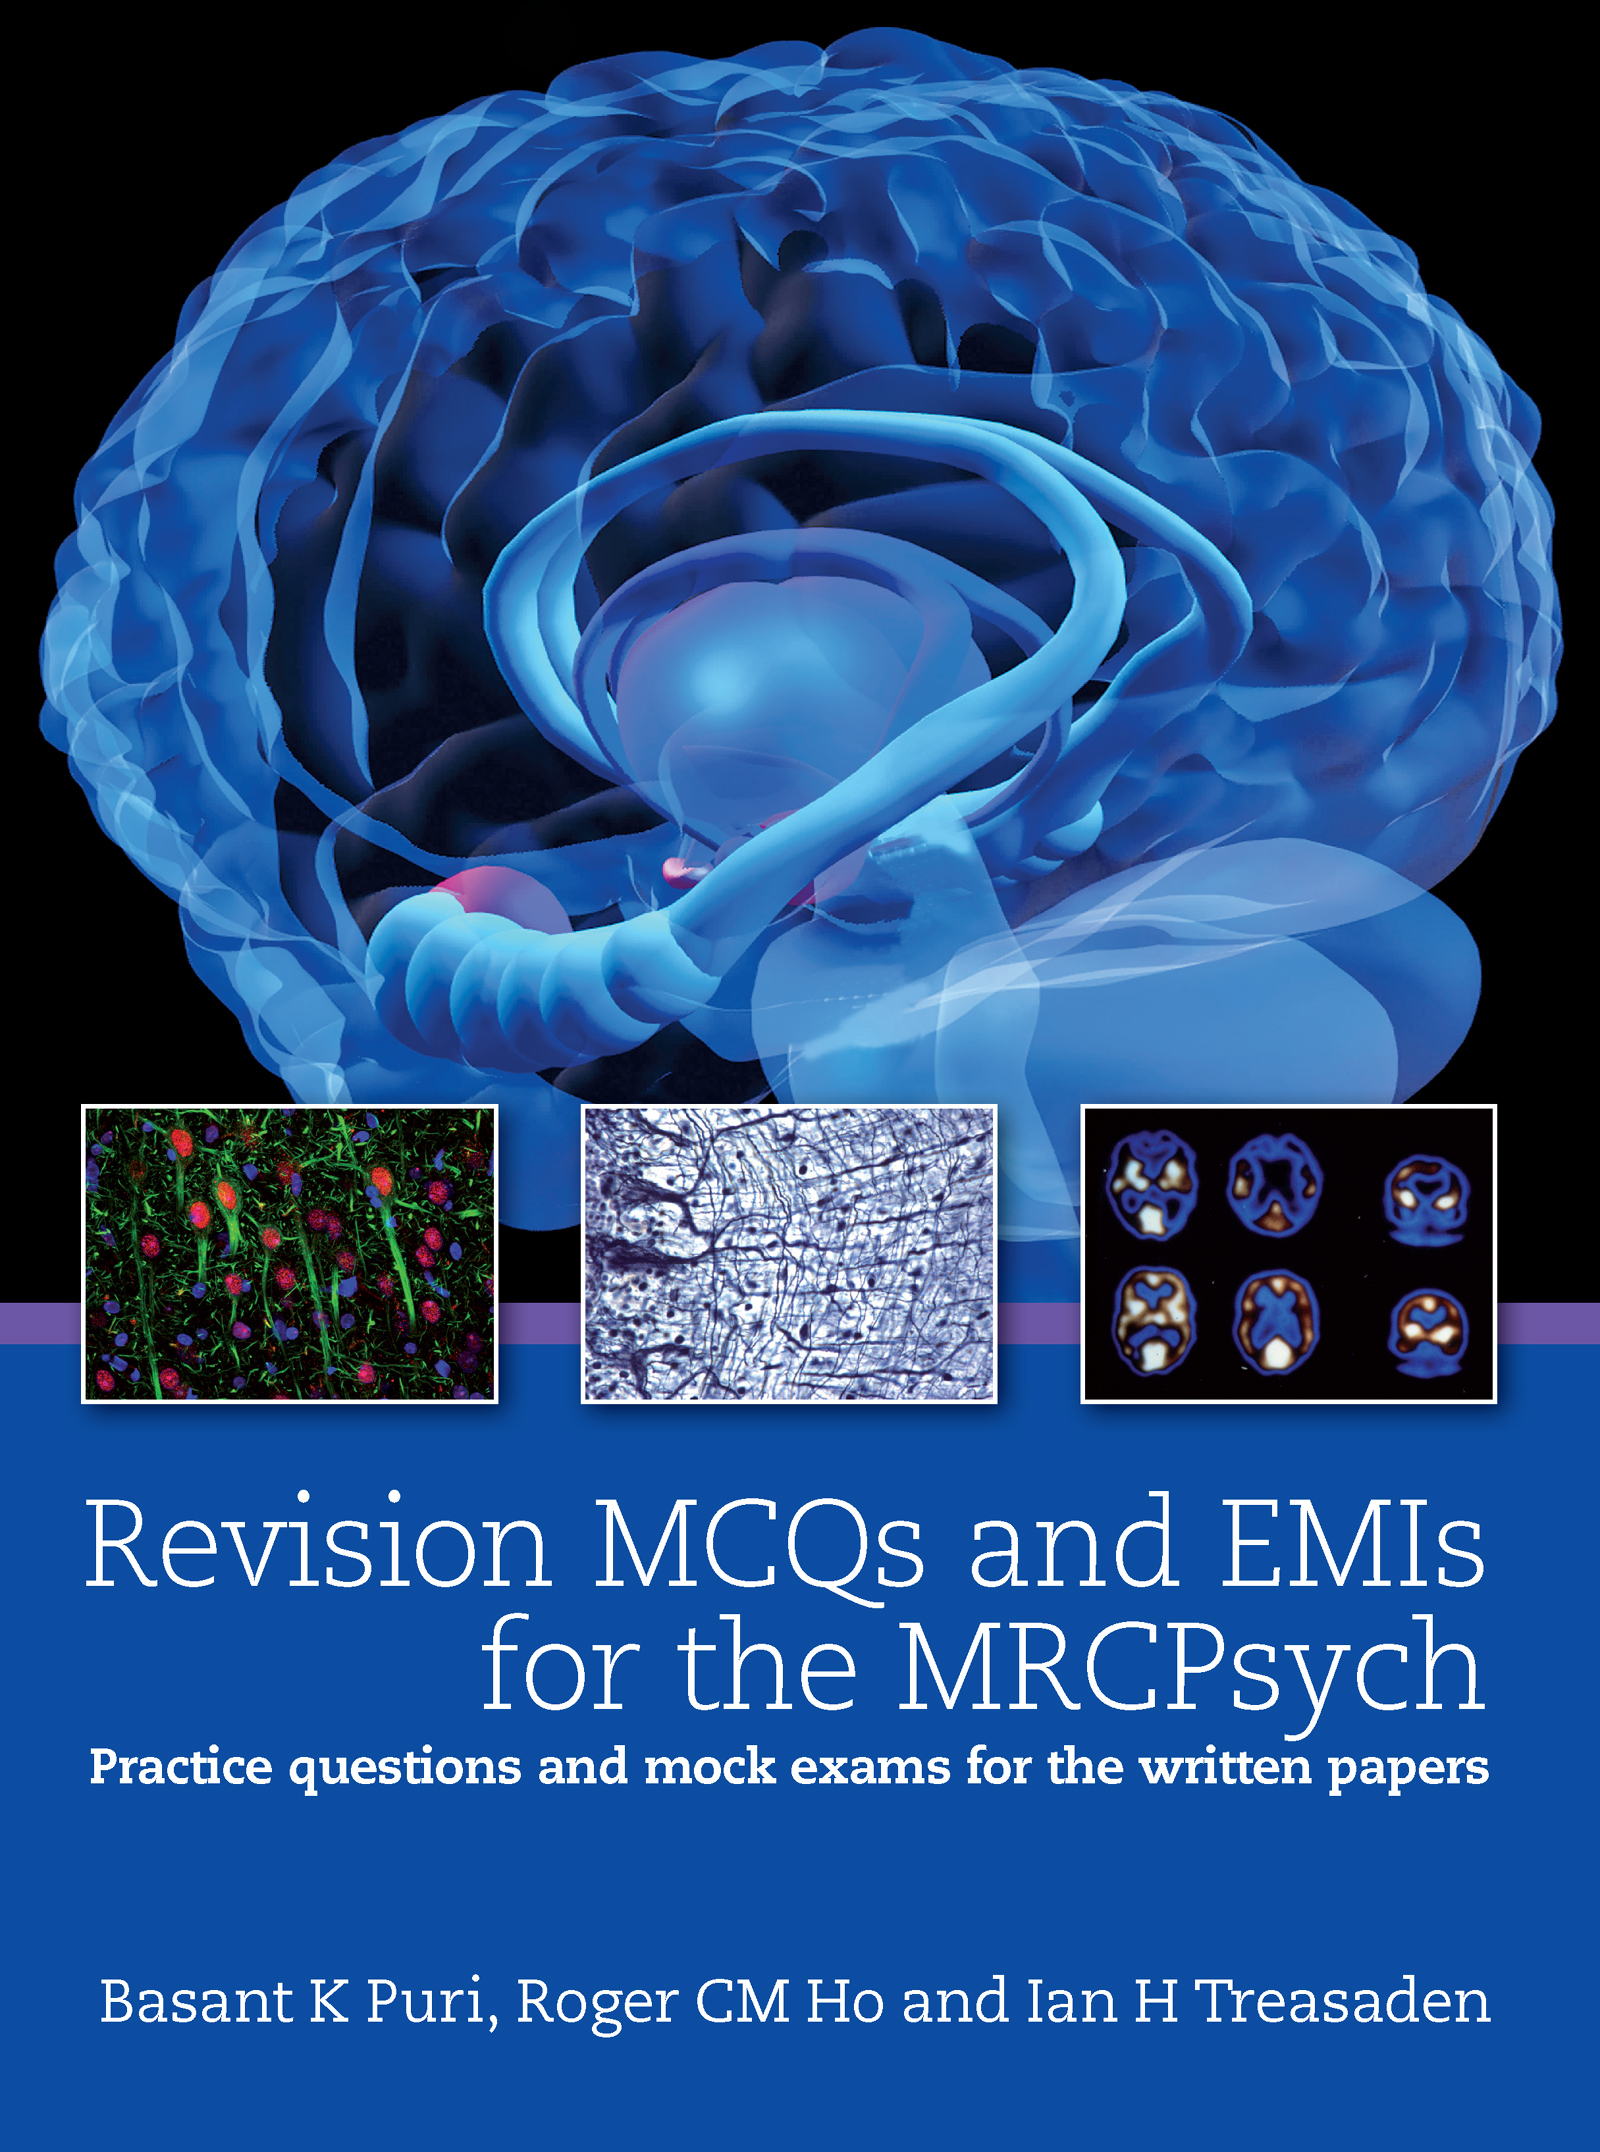 Revision MCQs and EMIs for the MRCPsych: Practice questions and mock exams for the written papers (Paperback) book cover